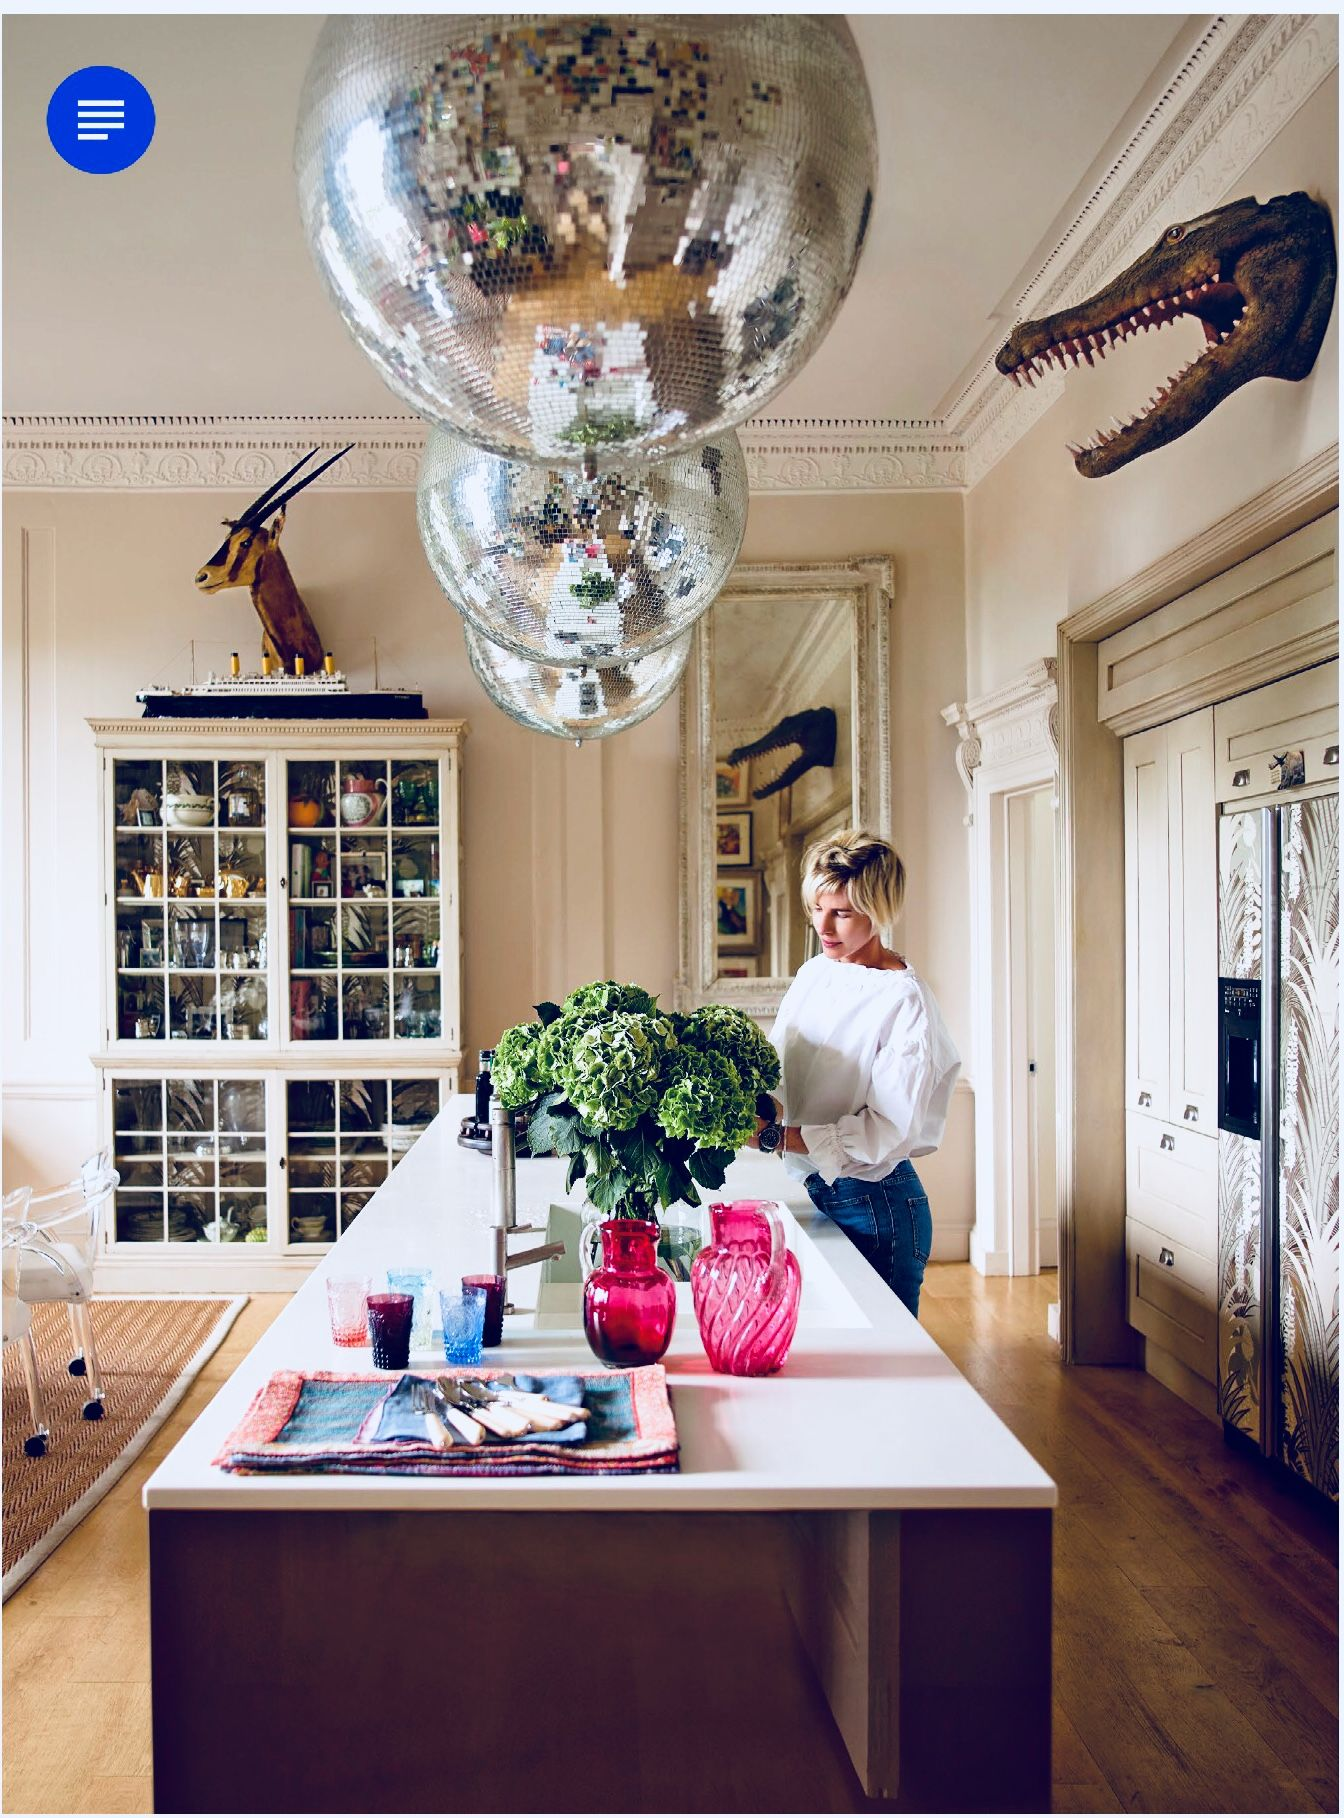 Disco balls in an English manor\'s kitchen | Kitchens and Dining in ...